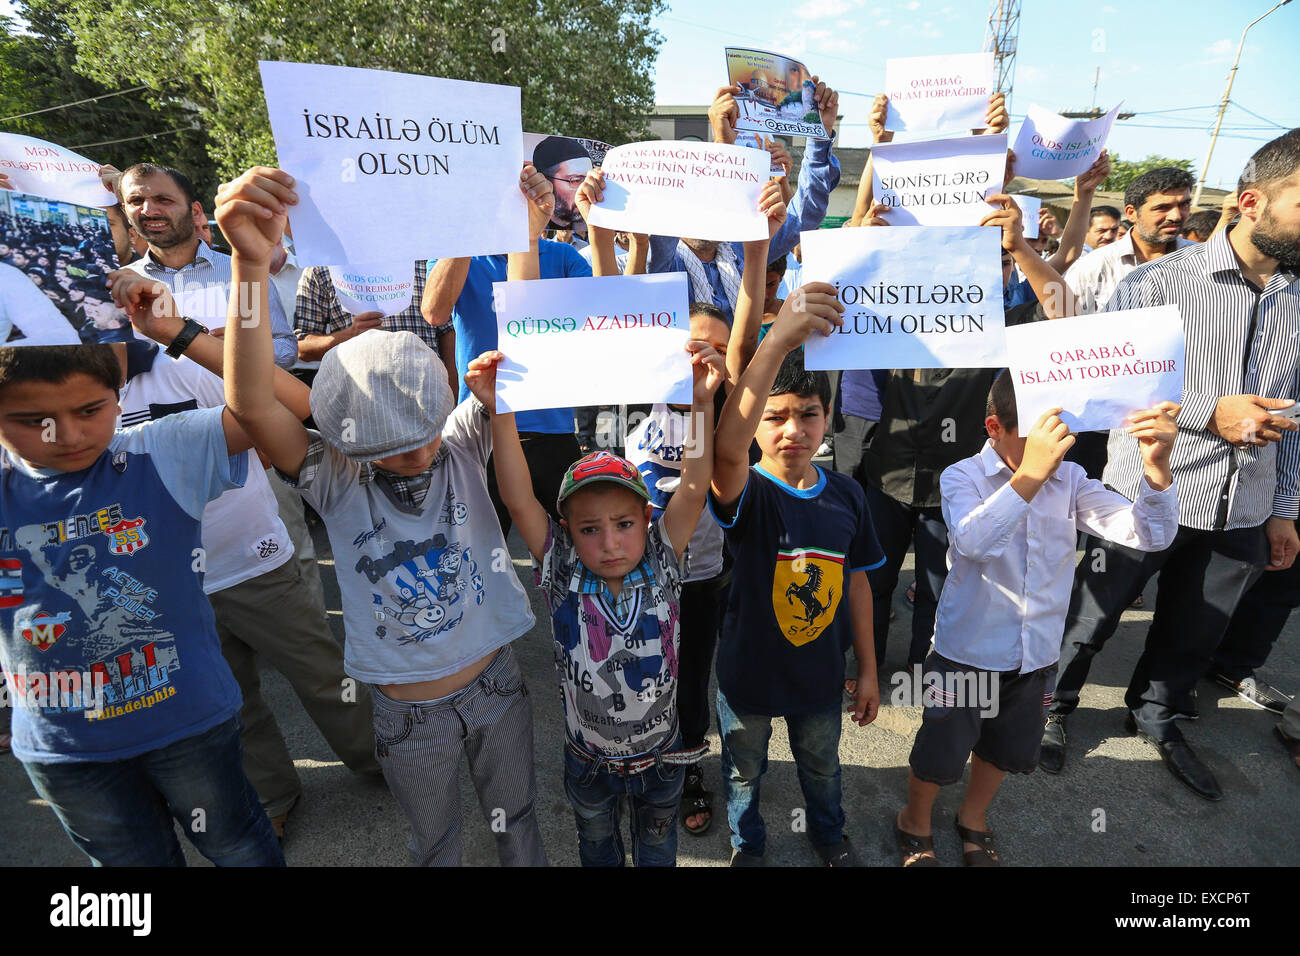 Baku Azerbaijan 10th July 2015 The Rally Participants Raised Stock Photo Alamy